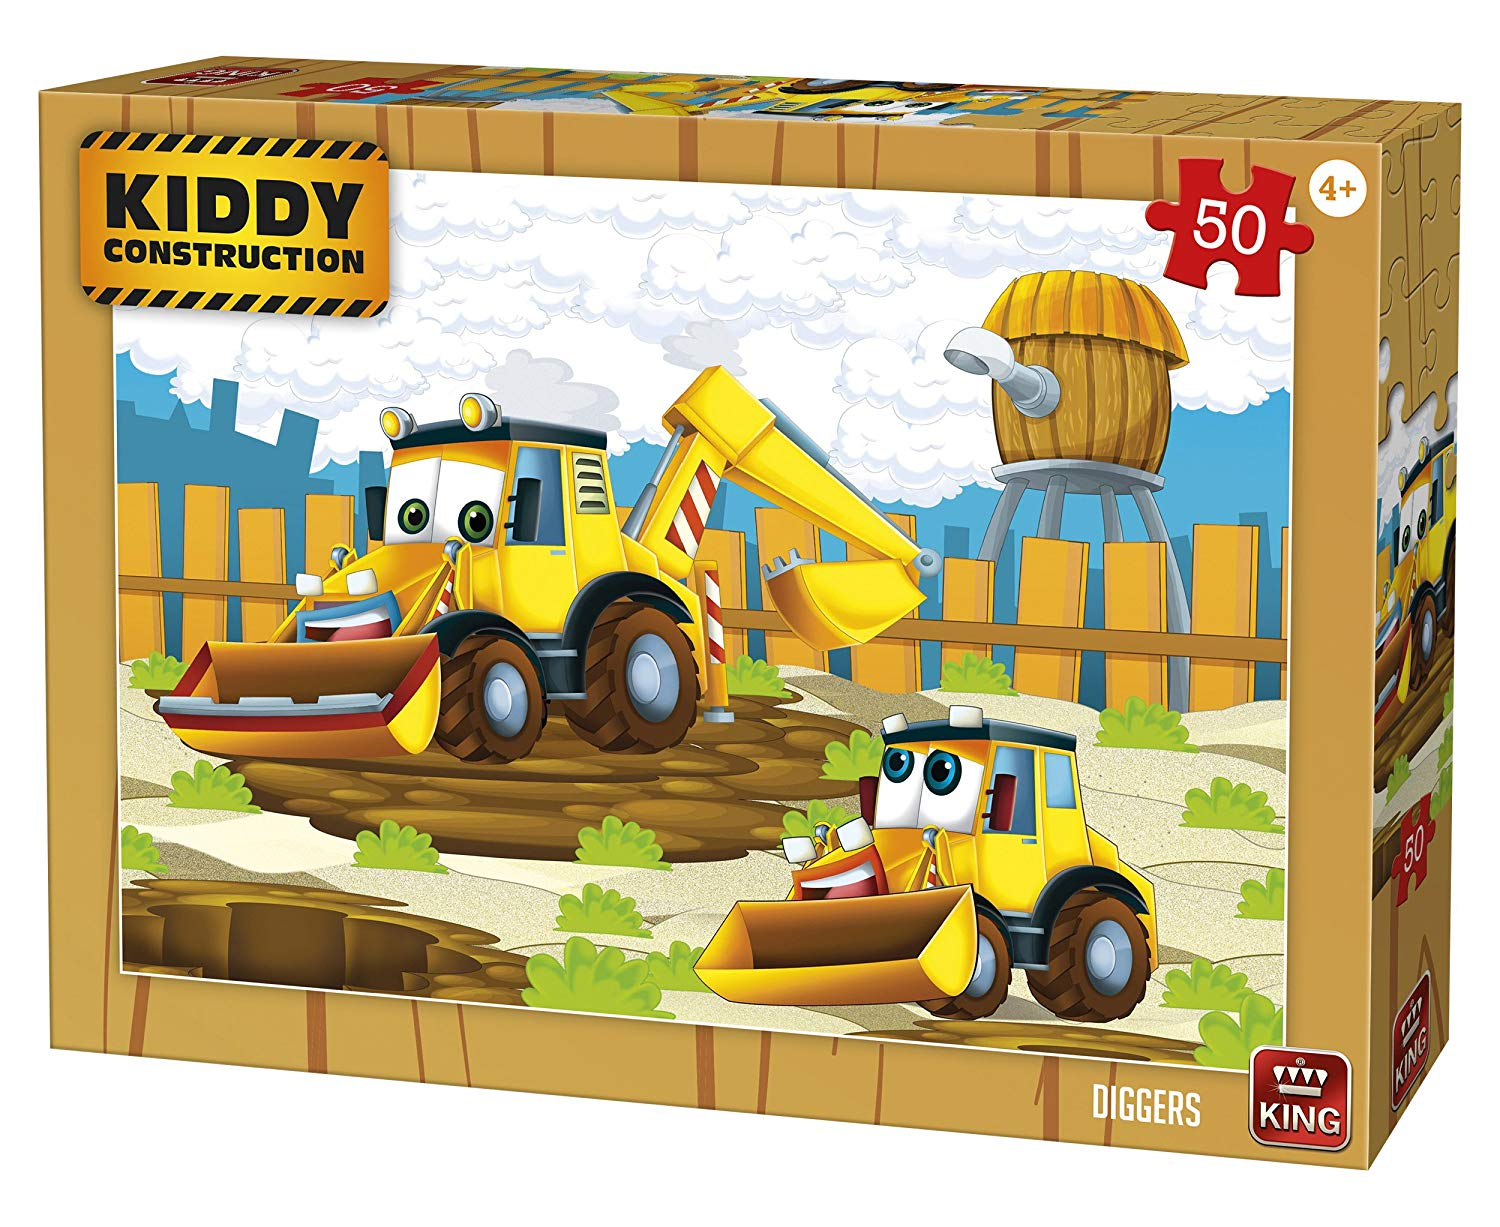 king-international-kiddy-construction-50-teile-puzzle-king-puzzle-05456